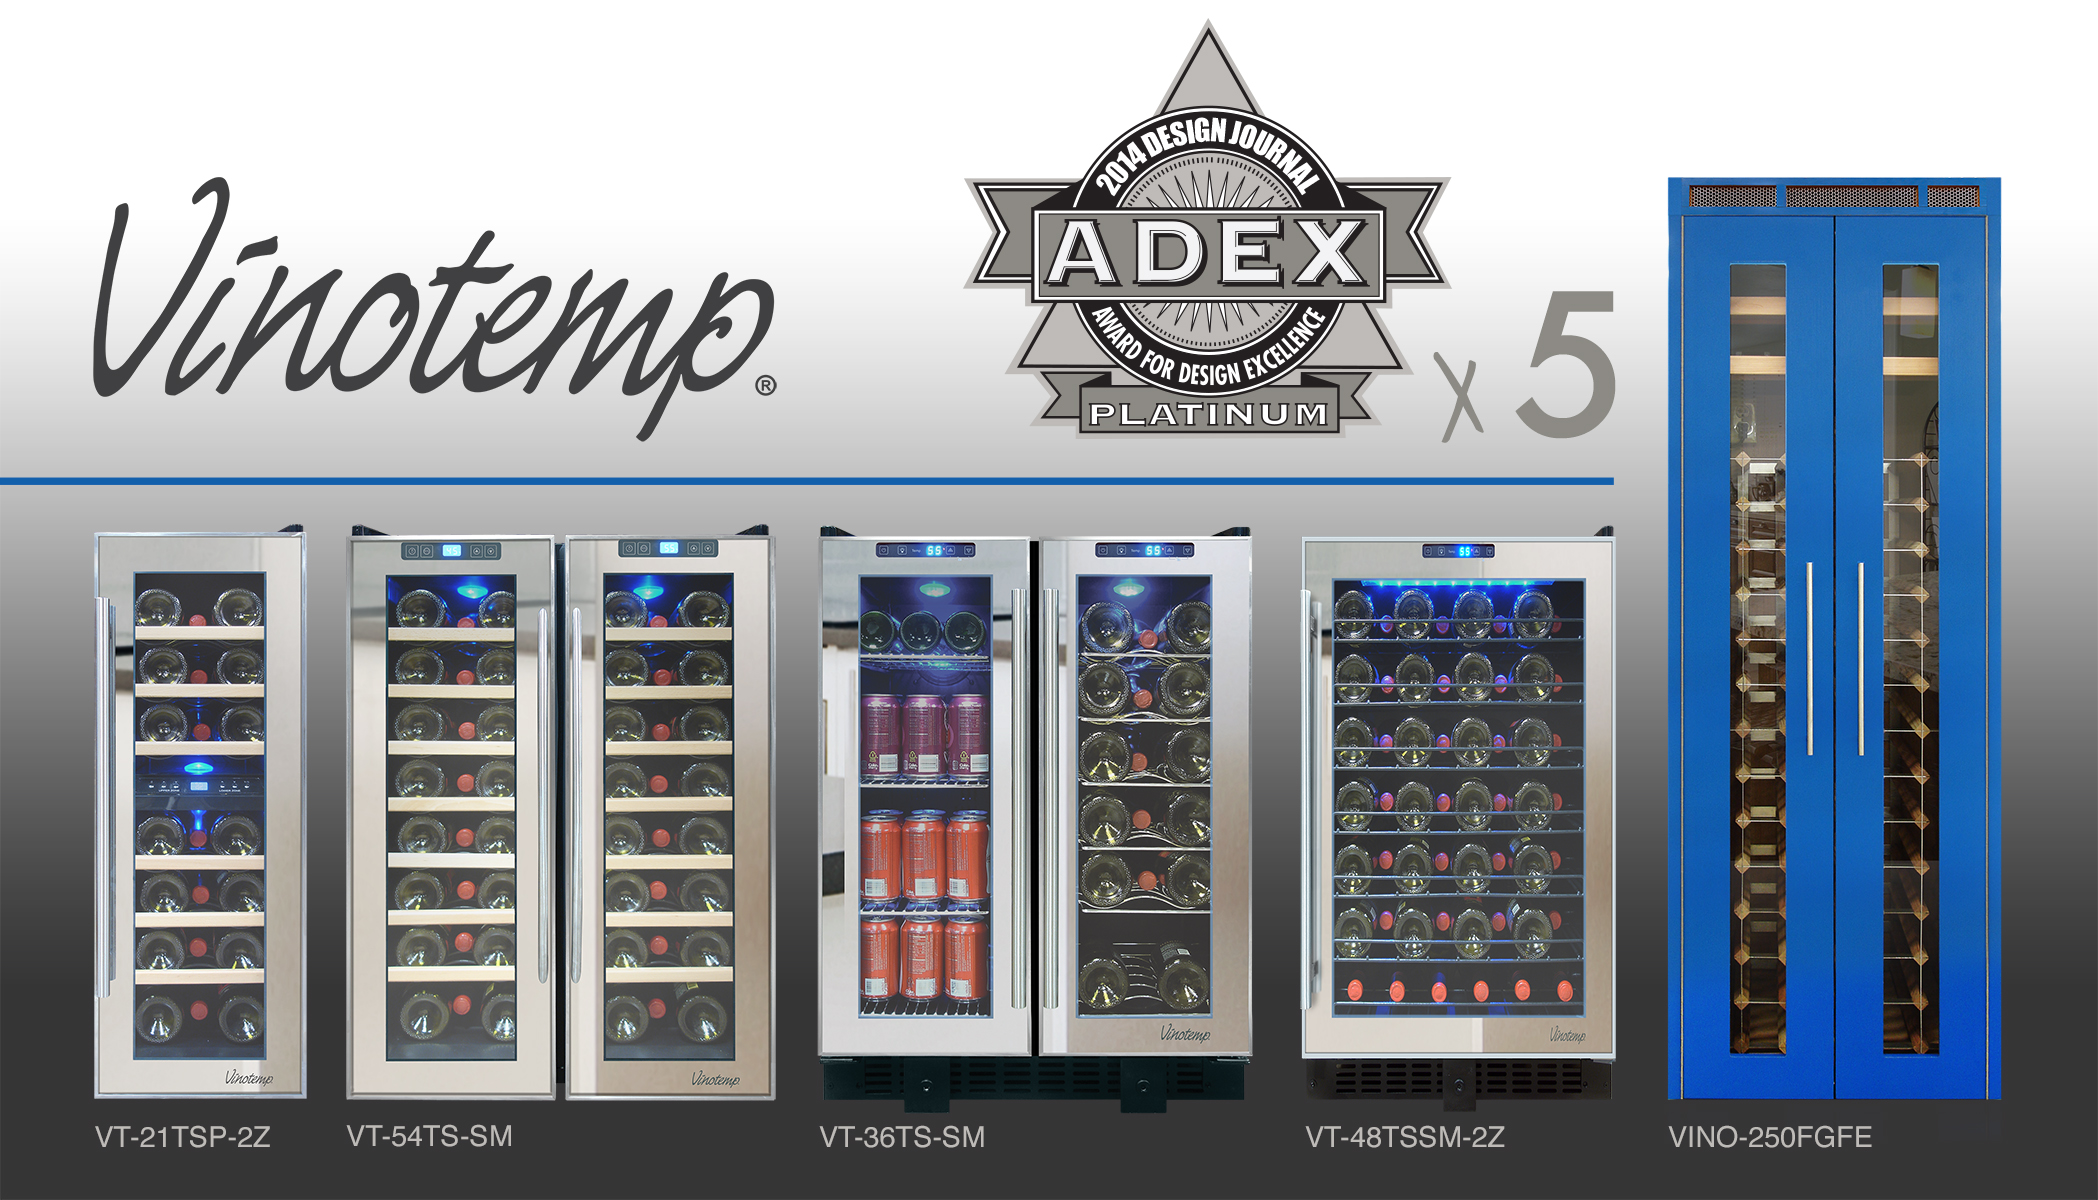 Vinotemp's five Platinum ADEX award-winning products.